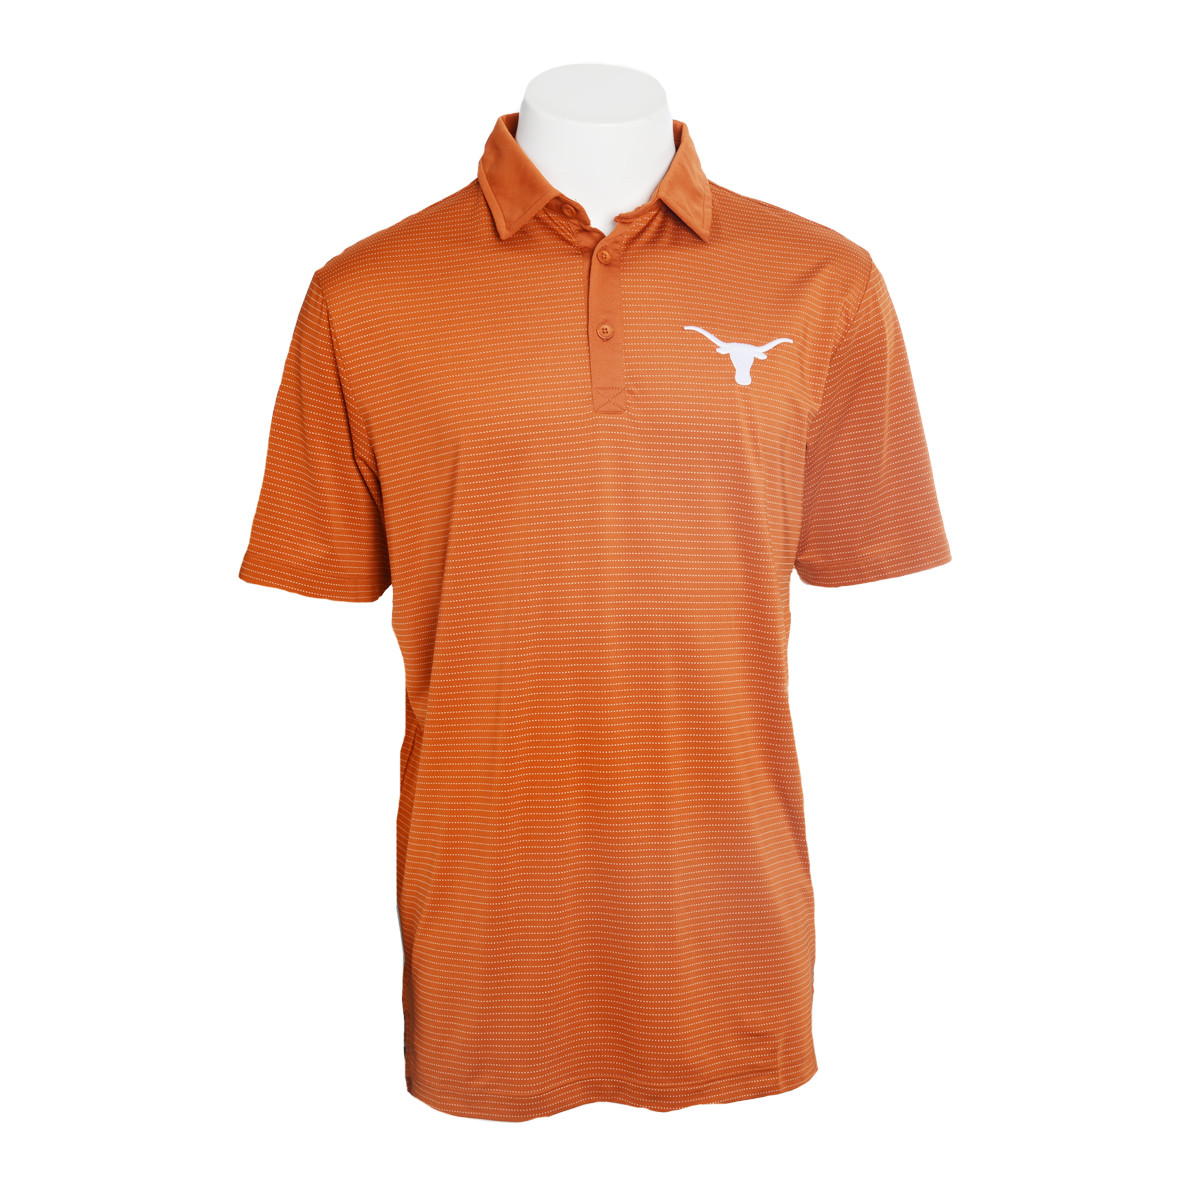 low priced b2434 033f6 Texas Longhorn Columbia Sunday Polo (2 Colors)